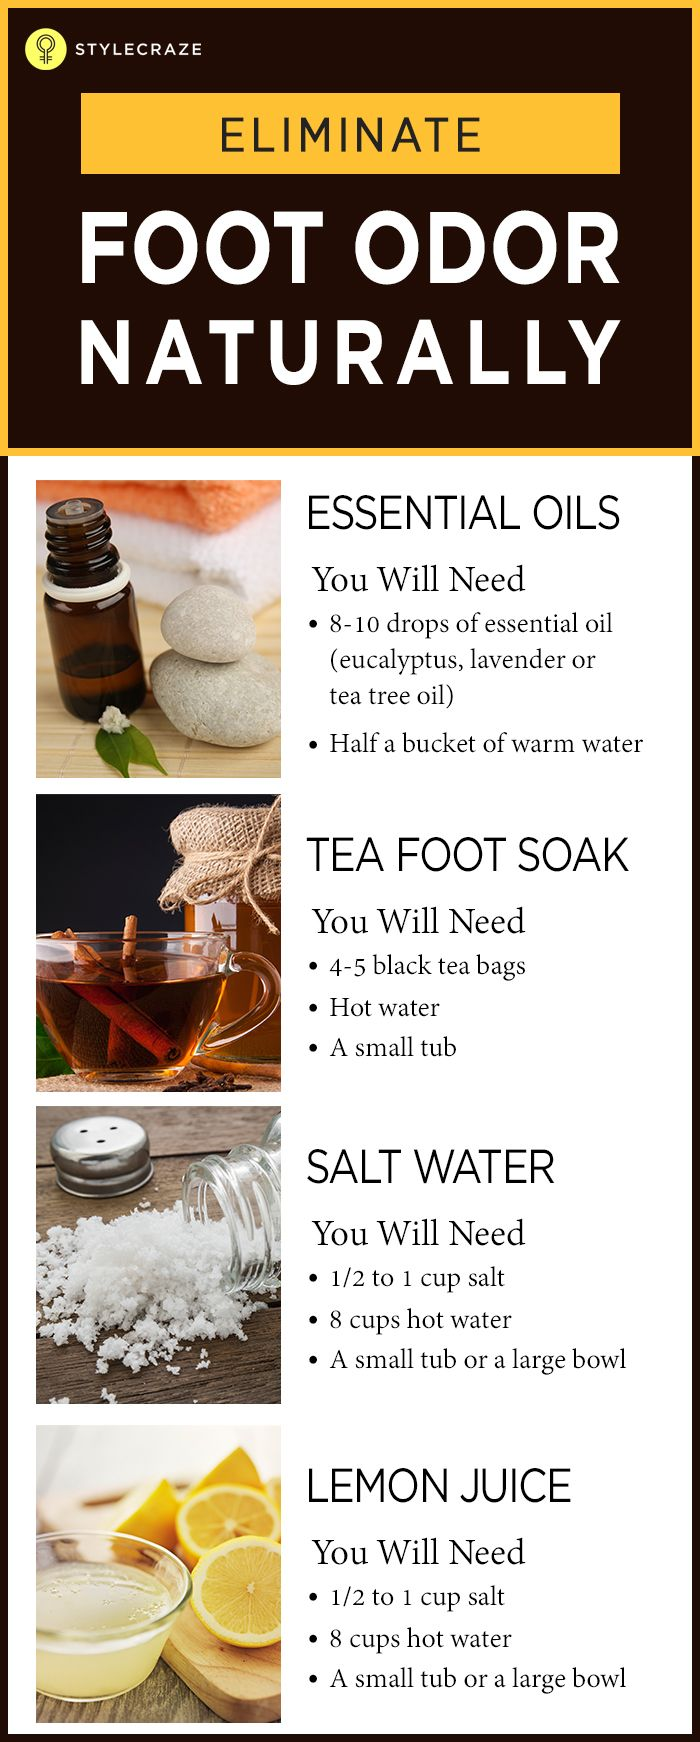 How To Eliminate Foot Odor